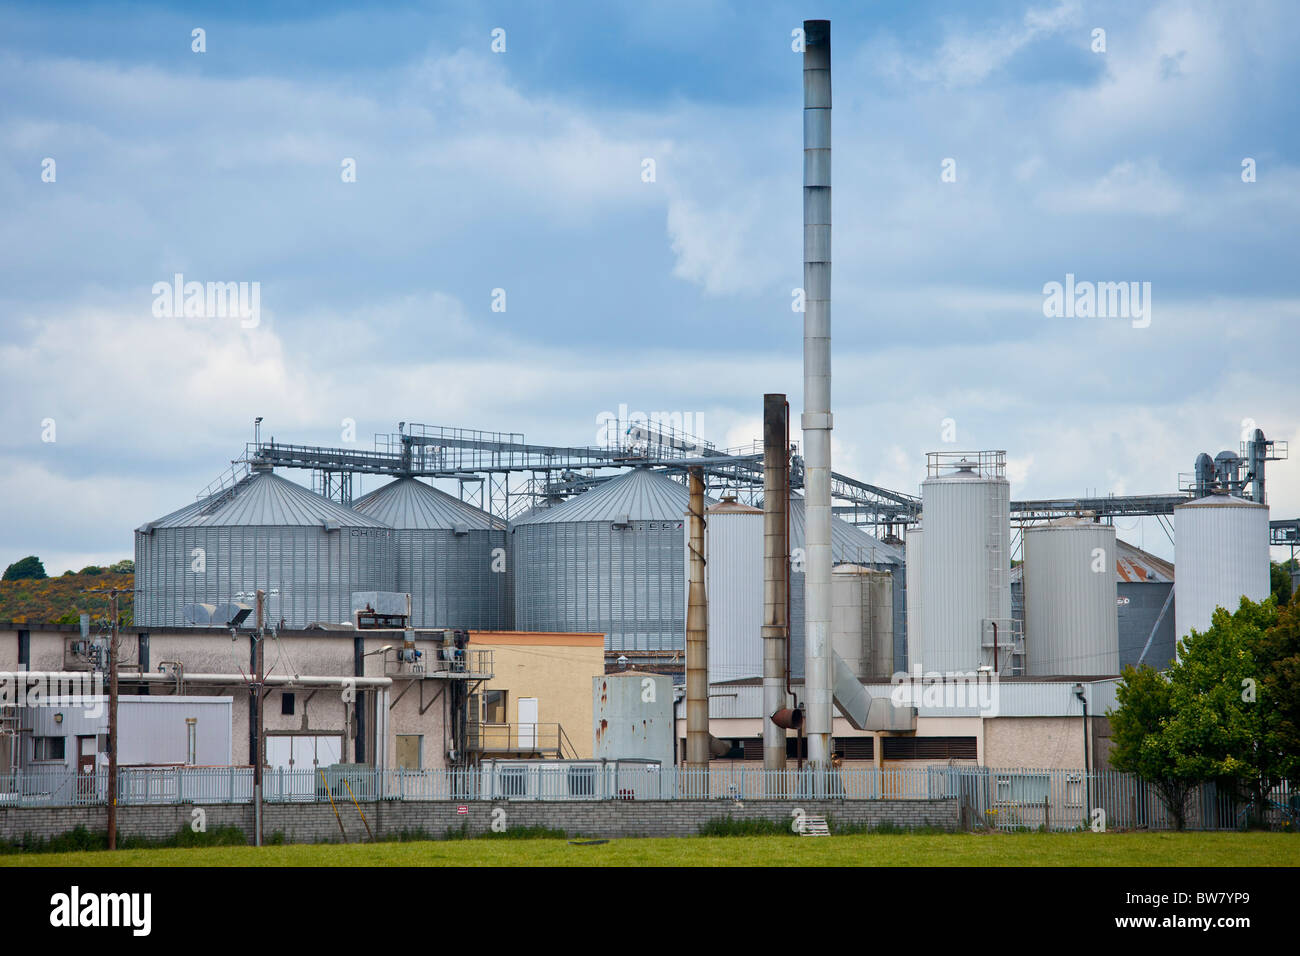 Dairygold Agri milk and cheese processing plant works at Mogeely, County Cork, Ireland - Stock Image